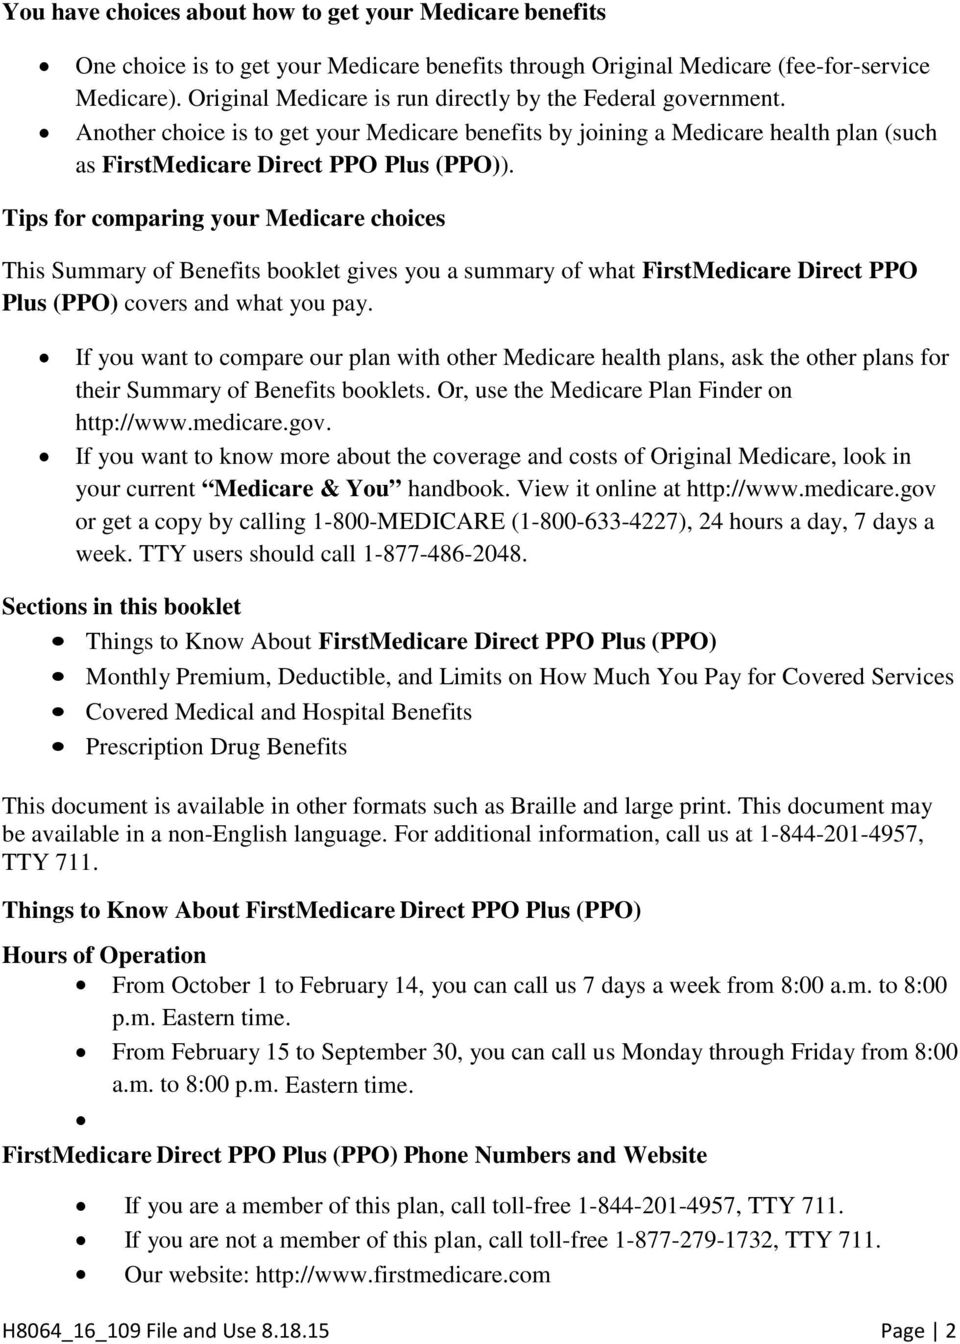 Tips for comparing your Medicare choices This Summary of Benefits booklet gives you a summary of what FirstMedicare Direct PPO Plus (PPO) covers and what you pay.